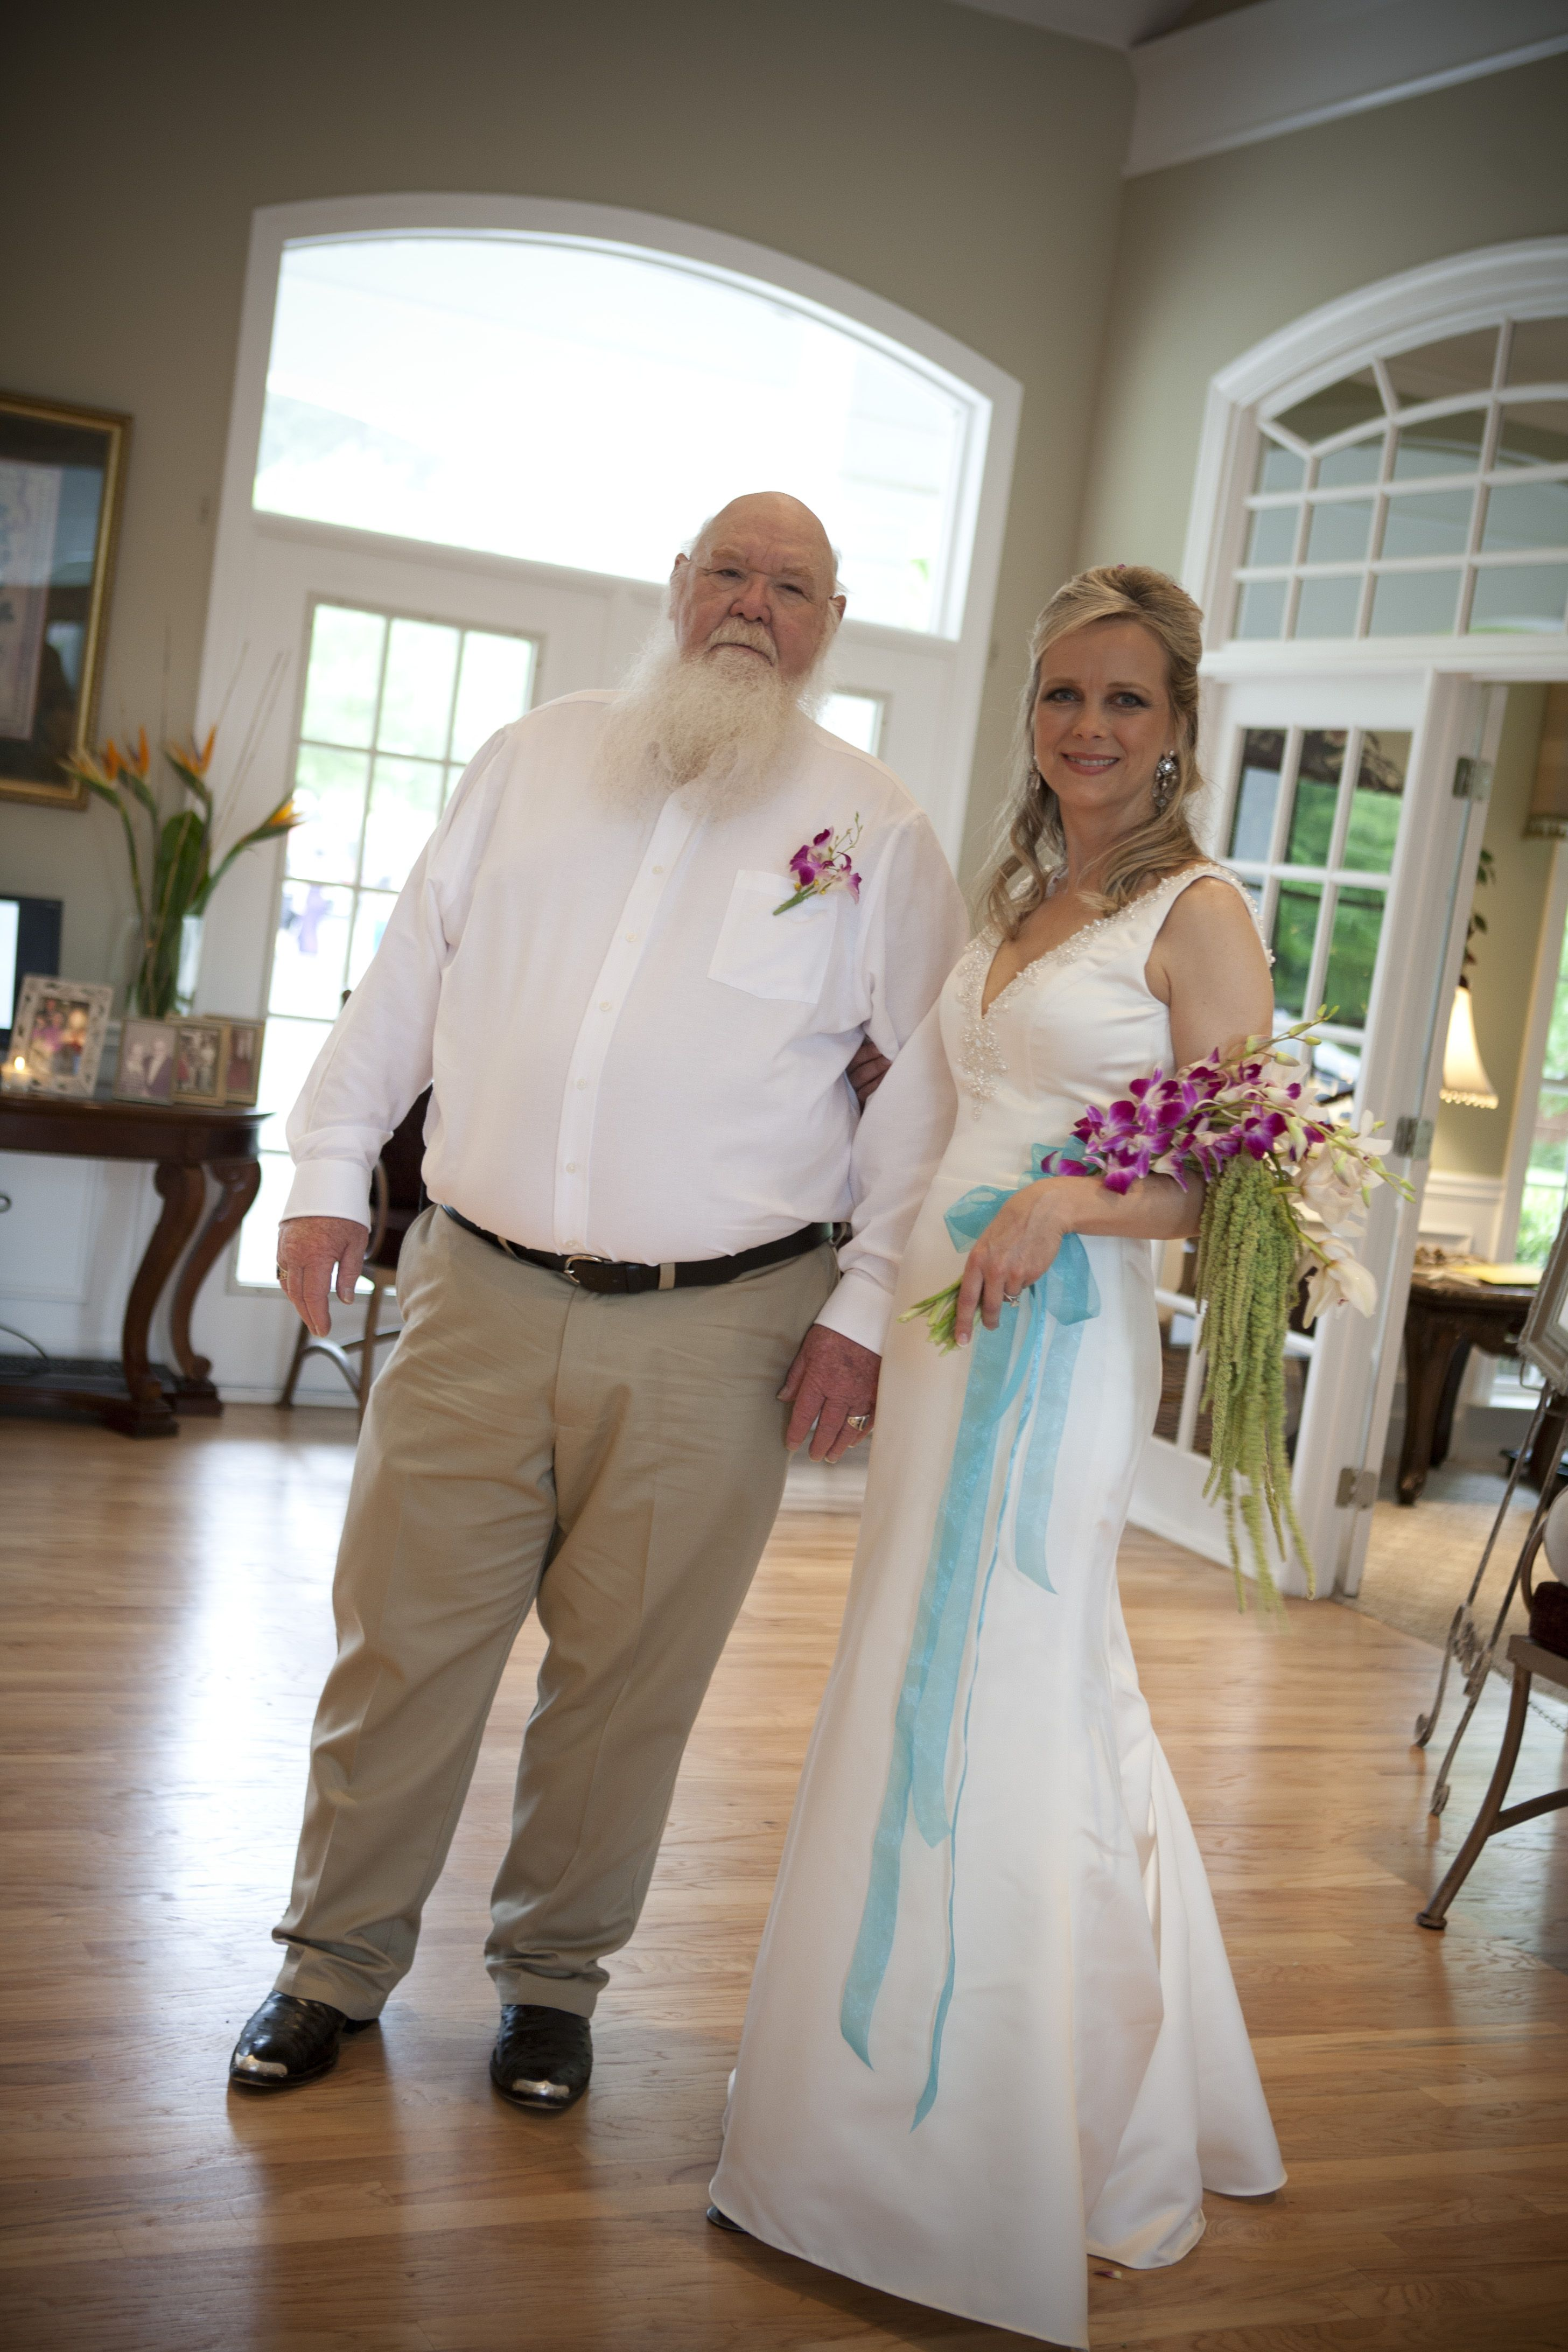 Father of the bride white shirt with tan casual pants